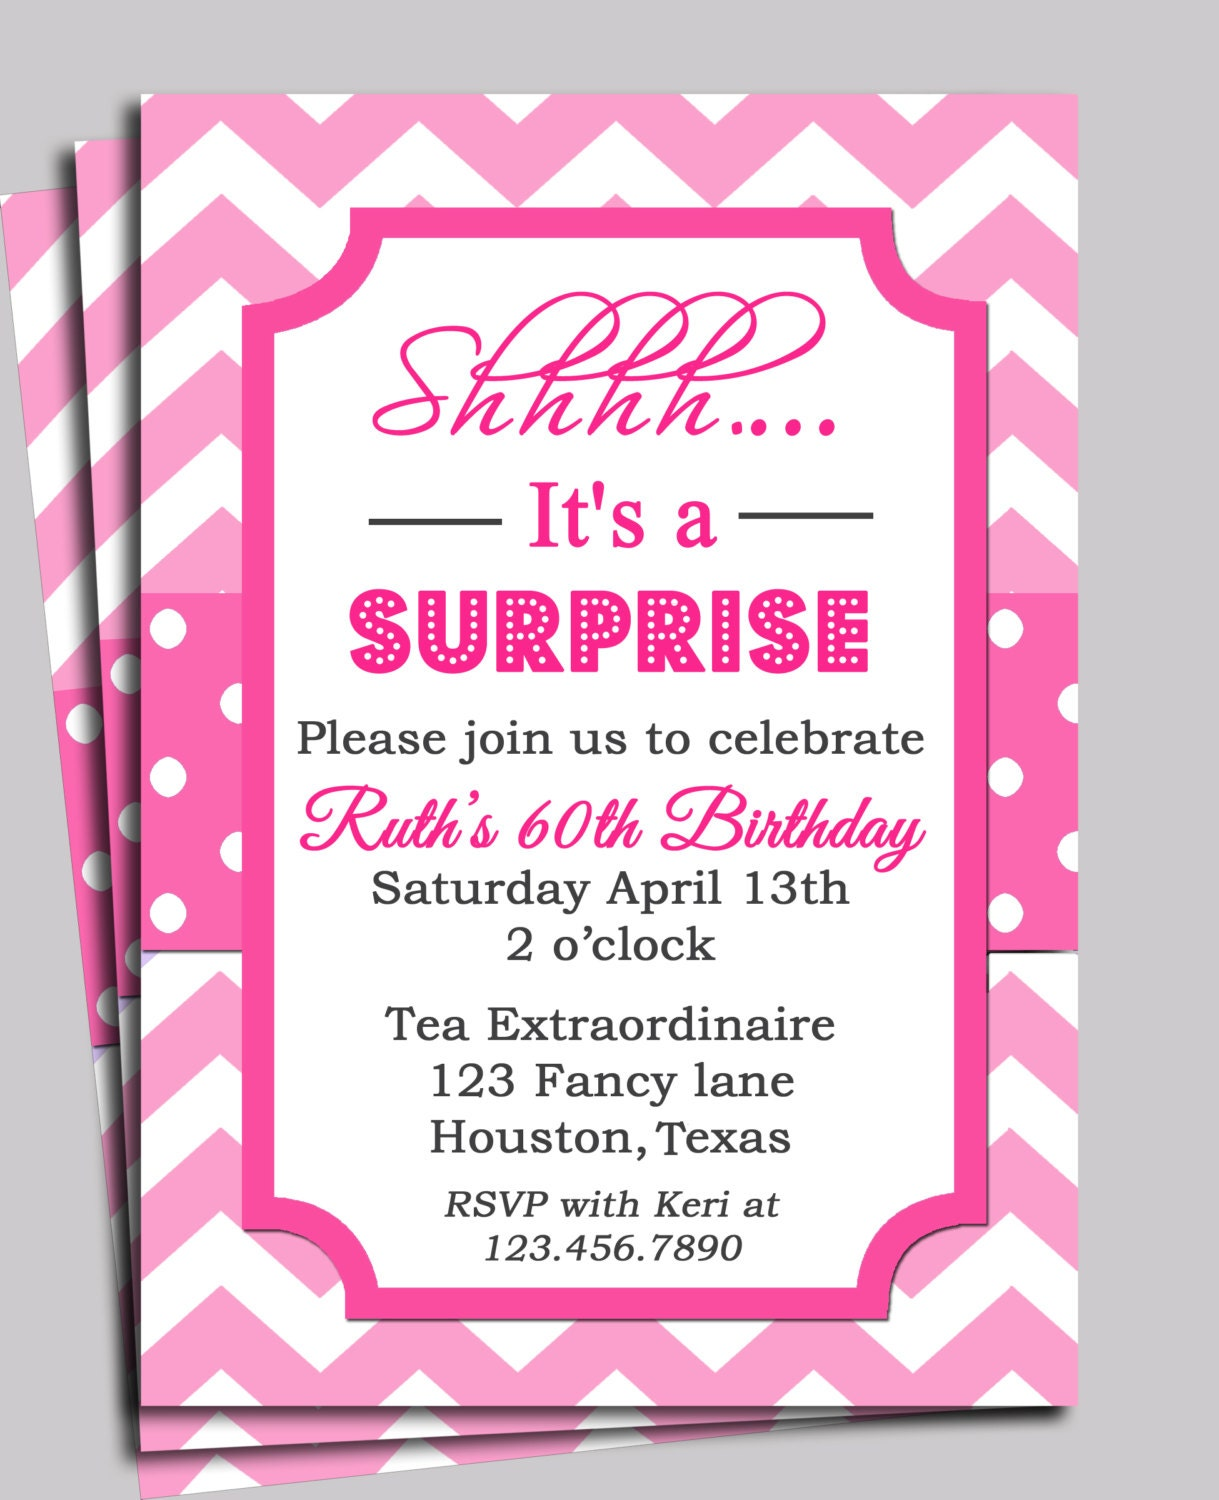 office bridal shower invitation wording lined paper in word chevron invitation printable or shipping you pick il fullxfull chevron invitation printable or office bridal shower invitation wording